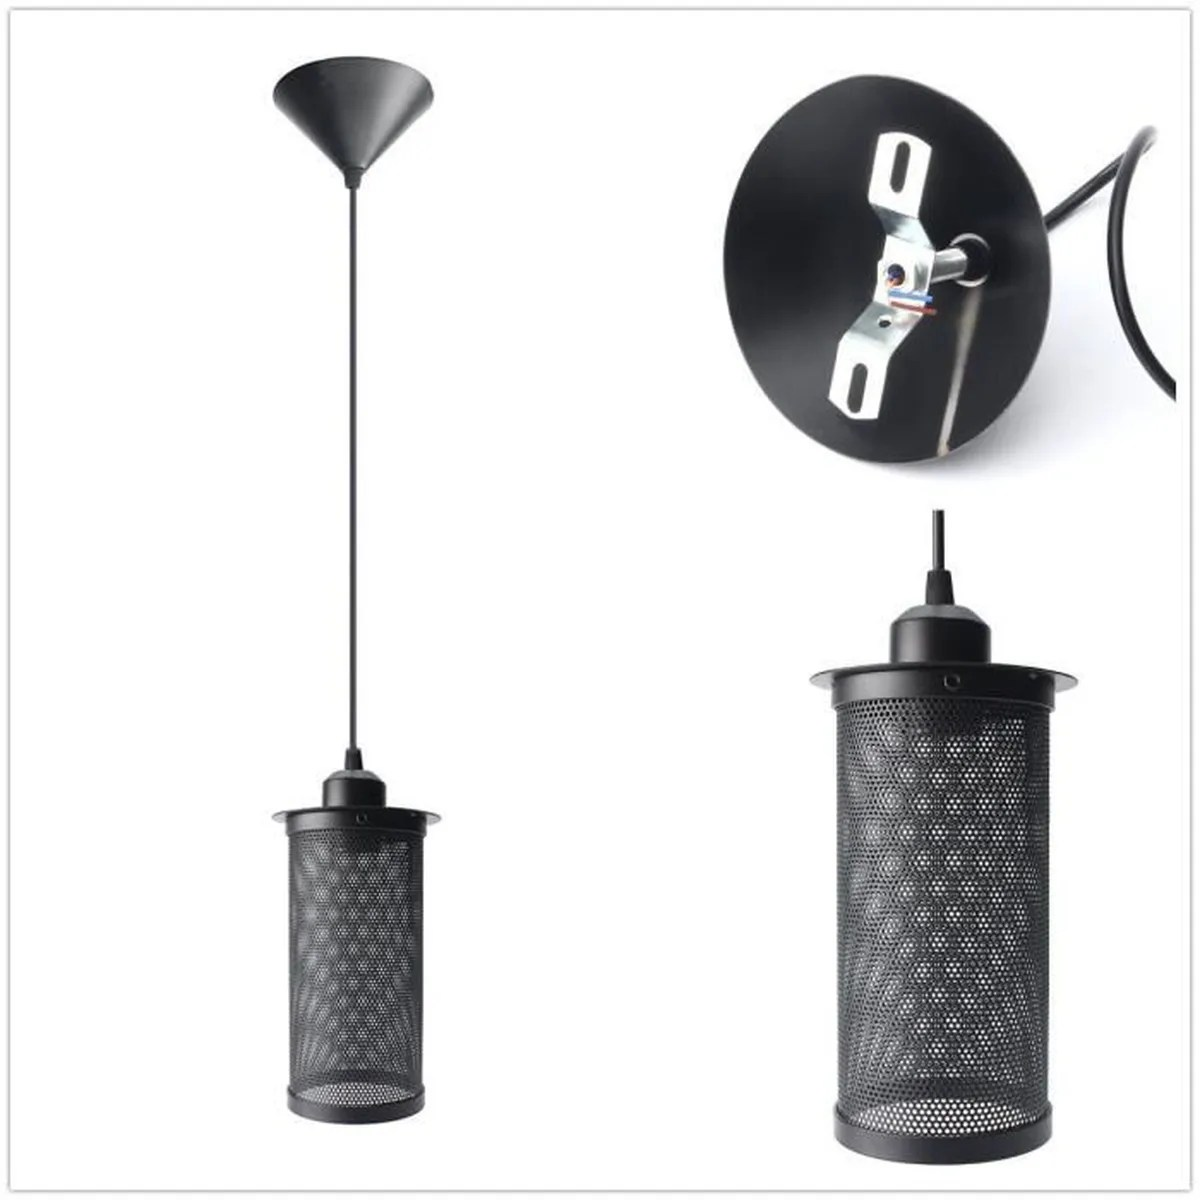 Lampe Suspension Style Industriel Lampe Suspension Abat Jour Avec Douille E27 Lustre